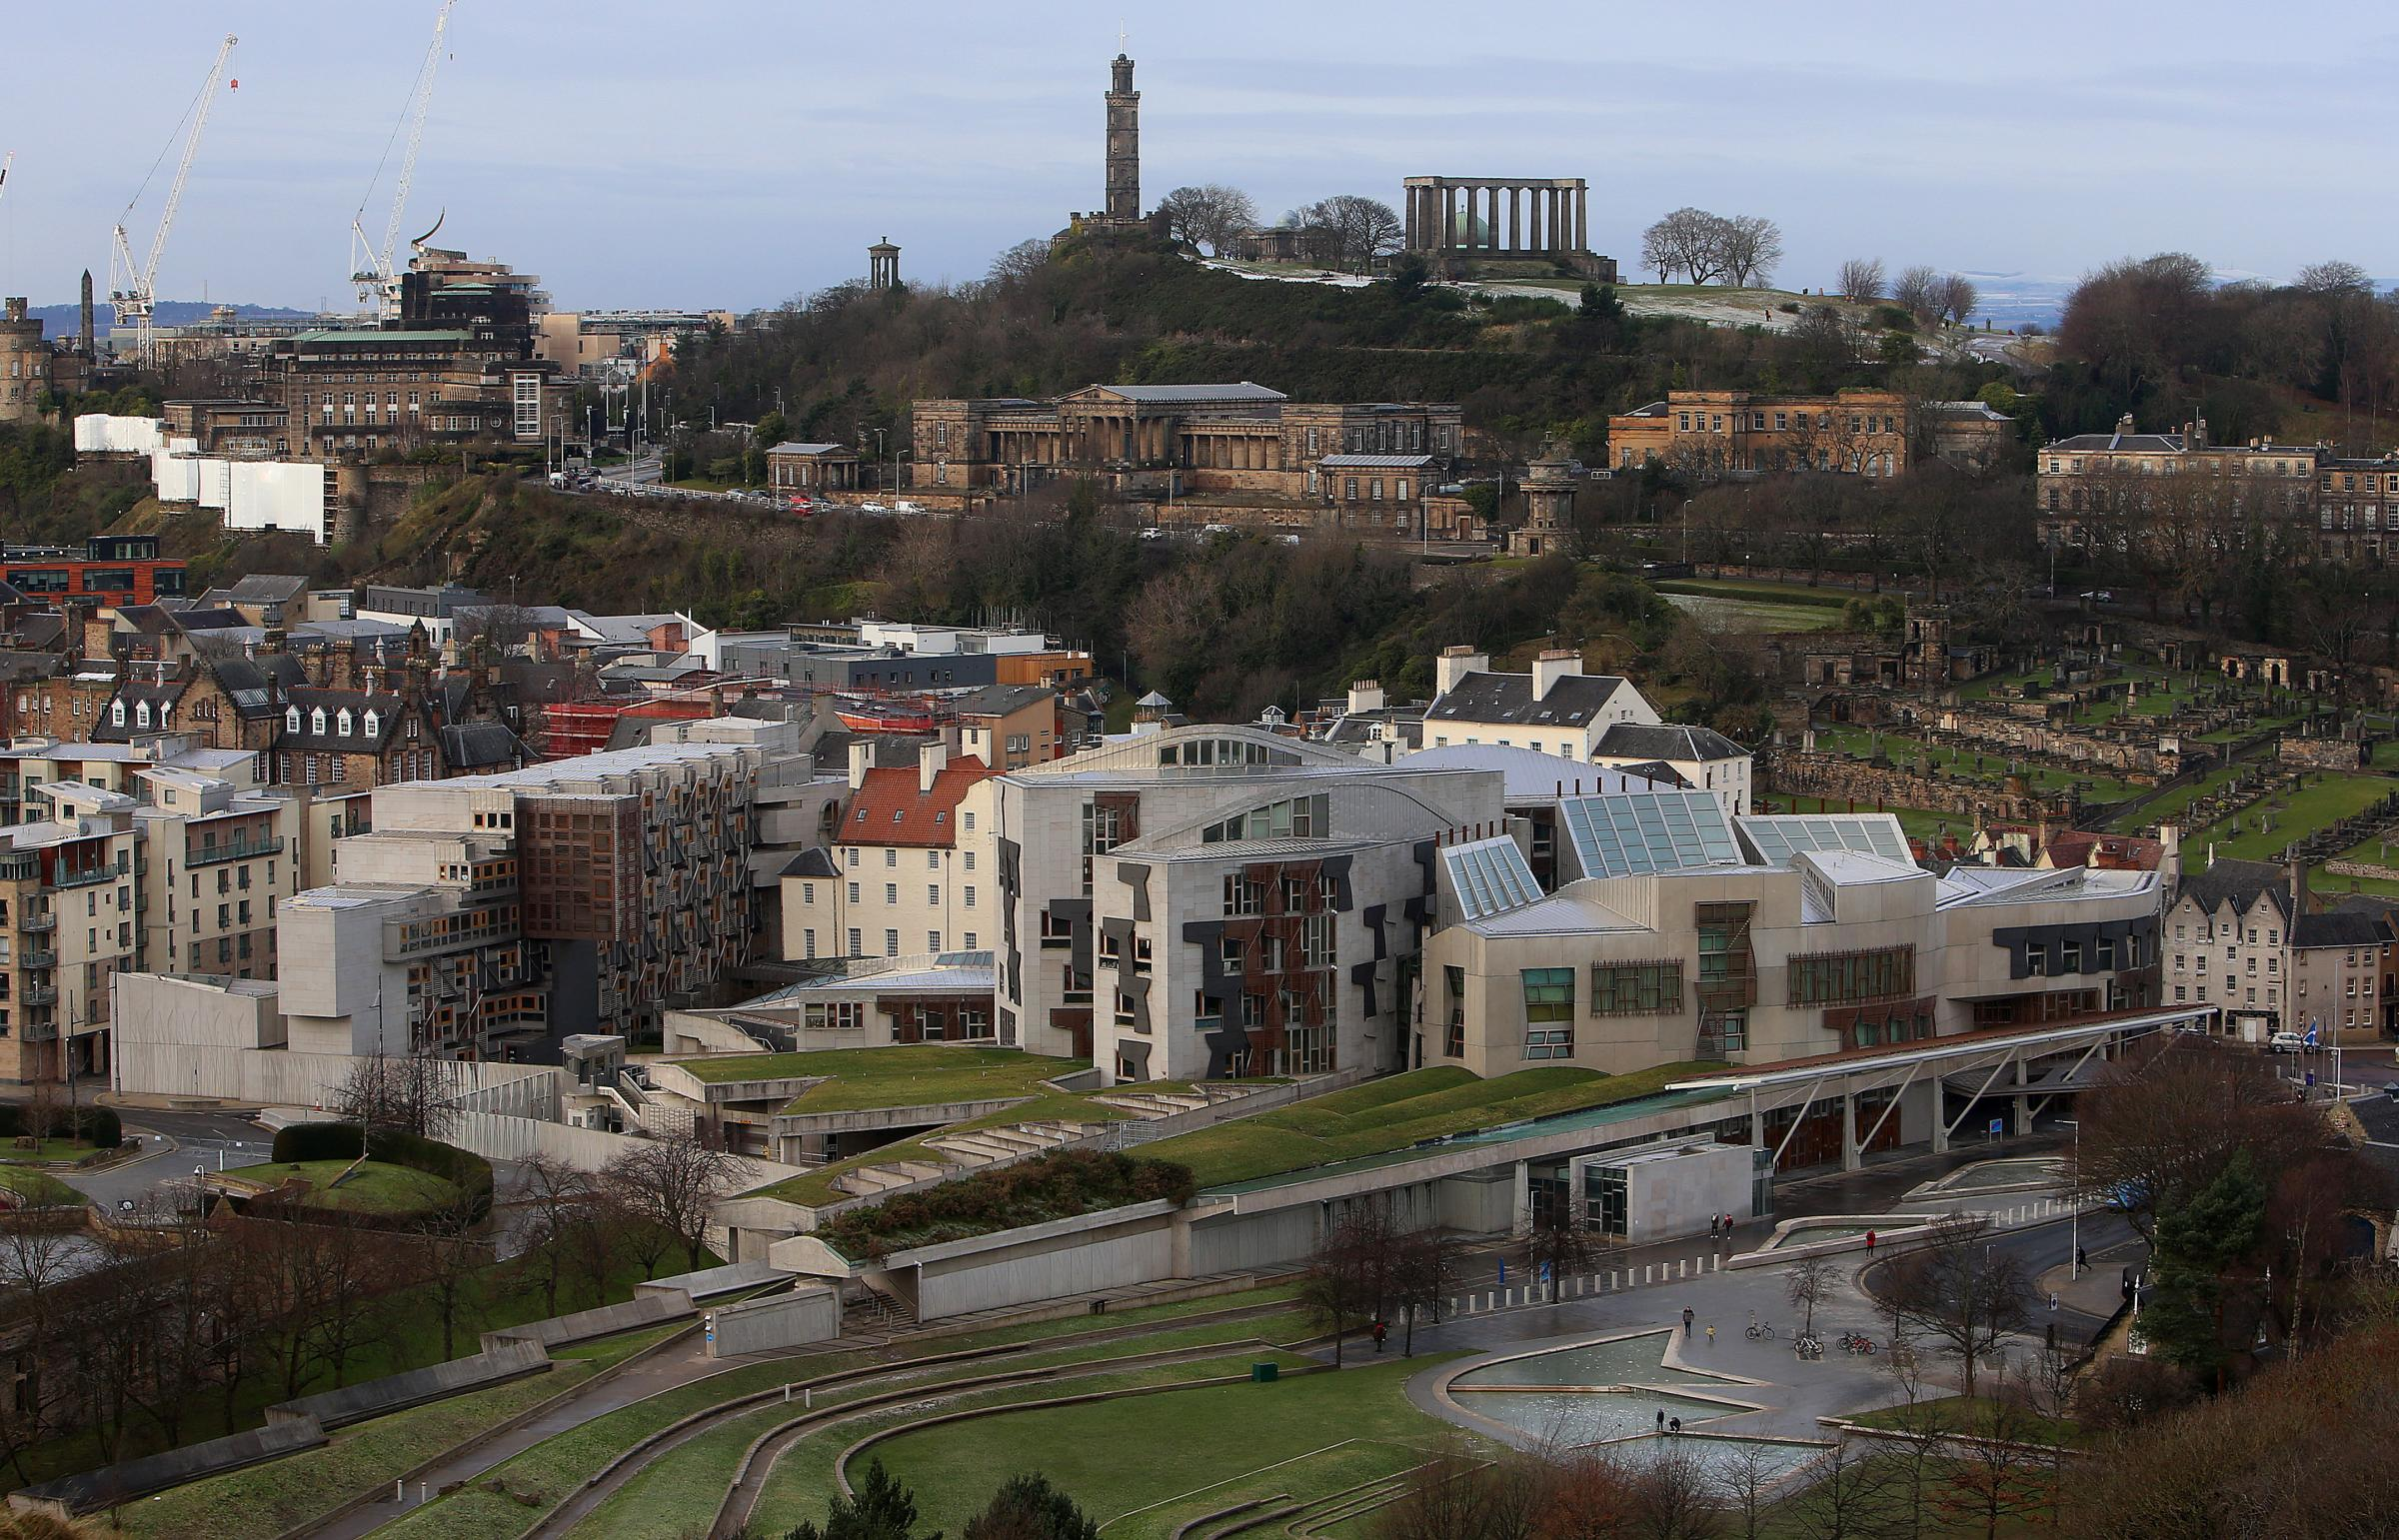 Stephen Paton: This is what has really enraged the Tories about devolution